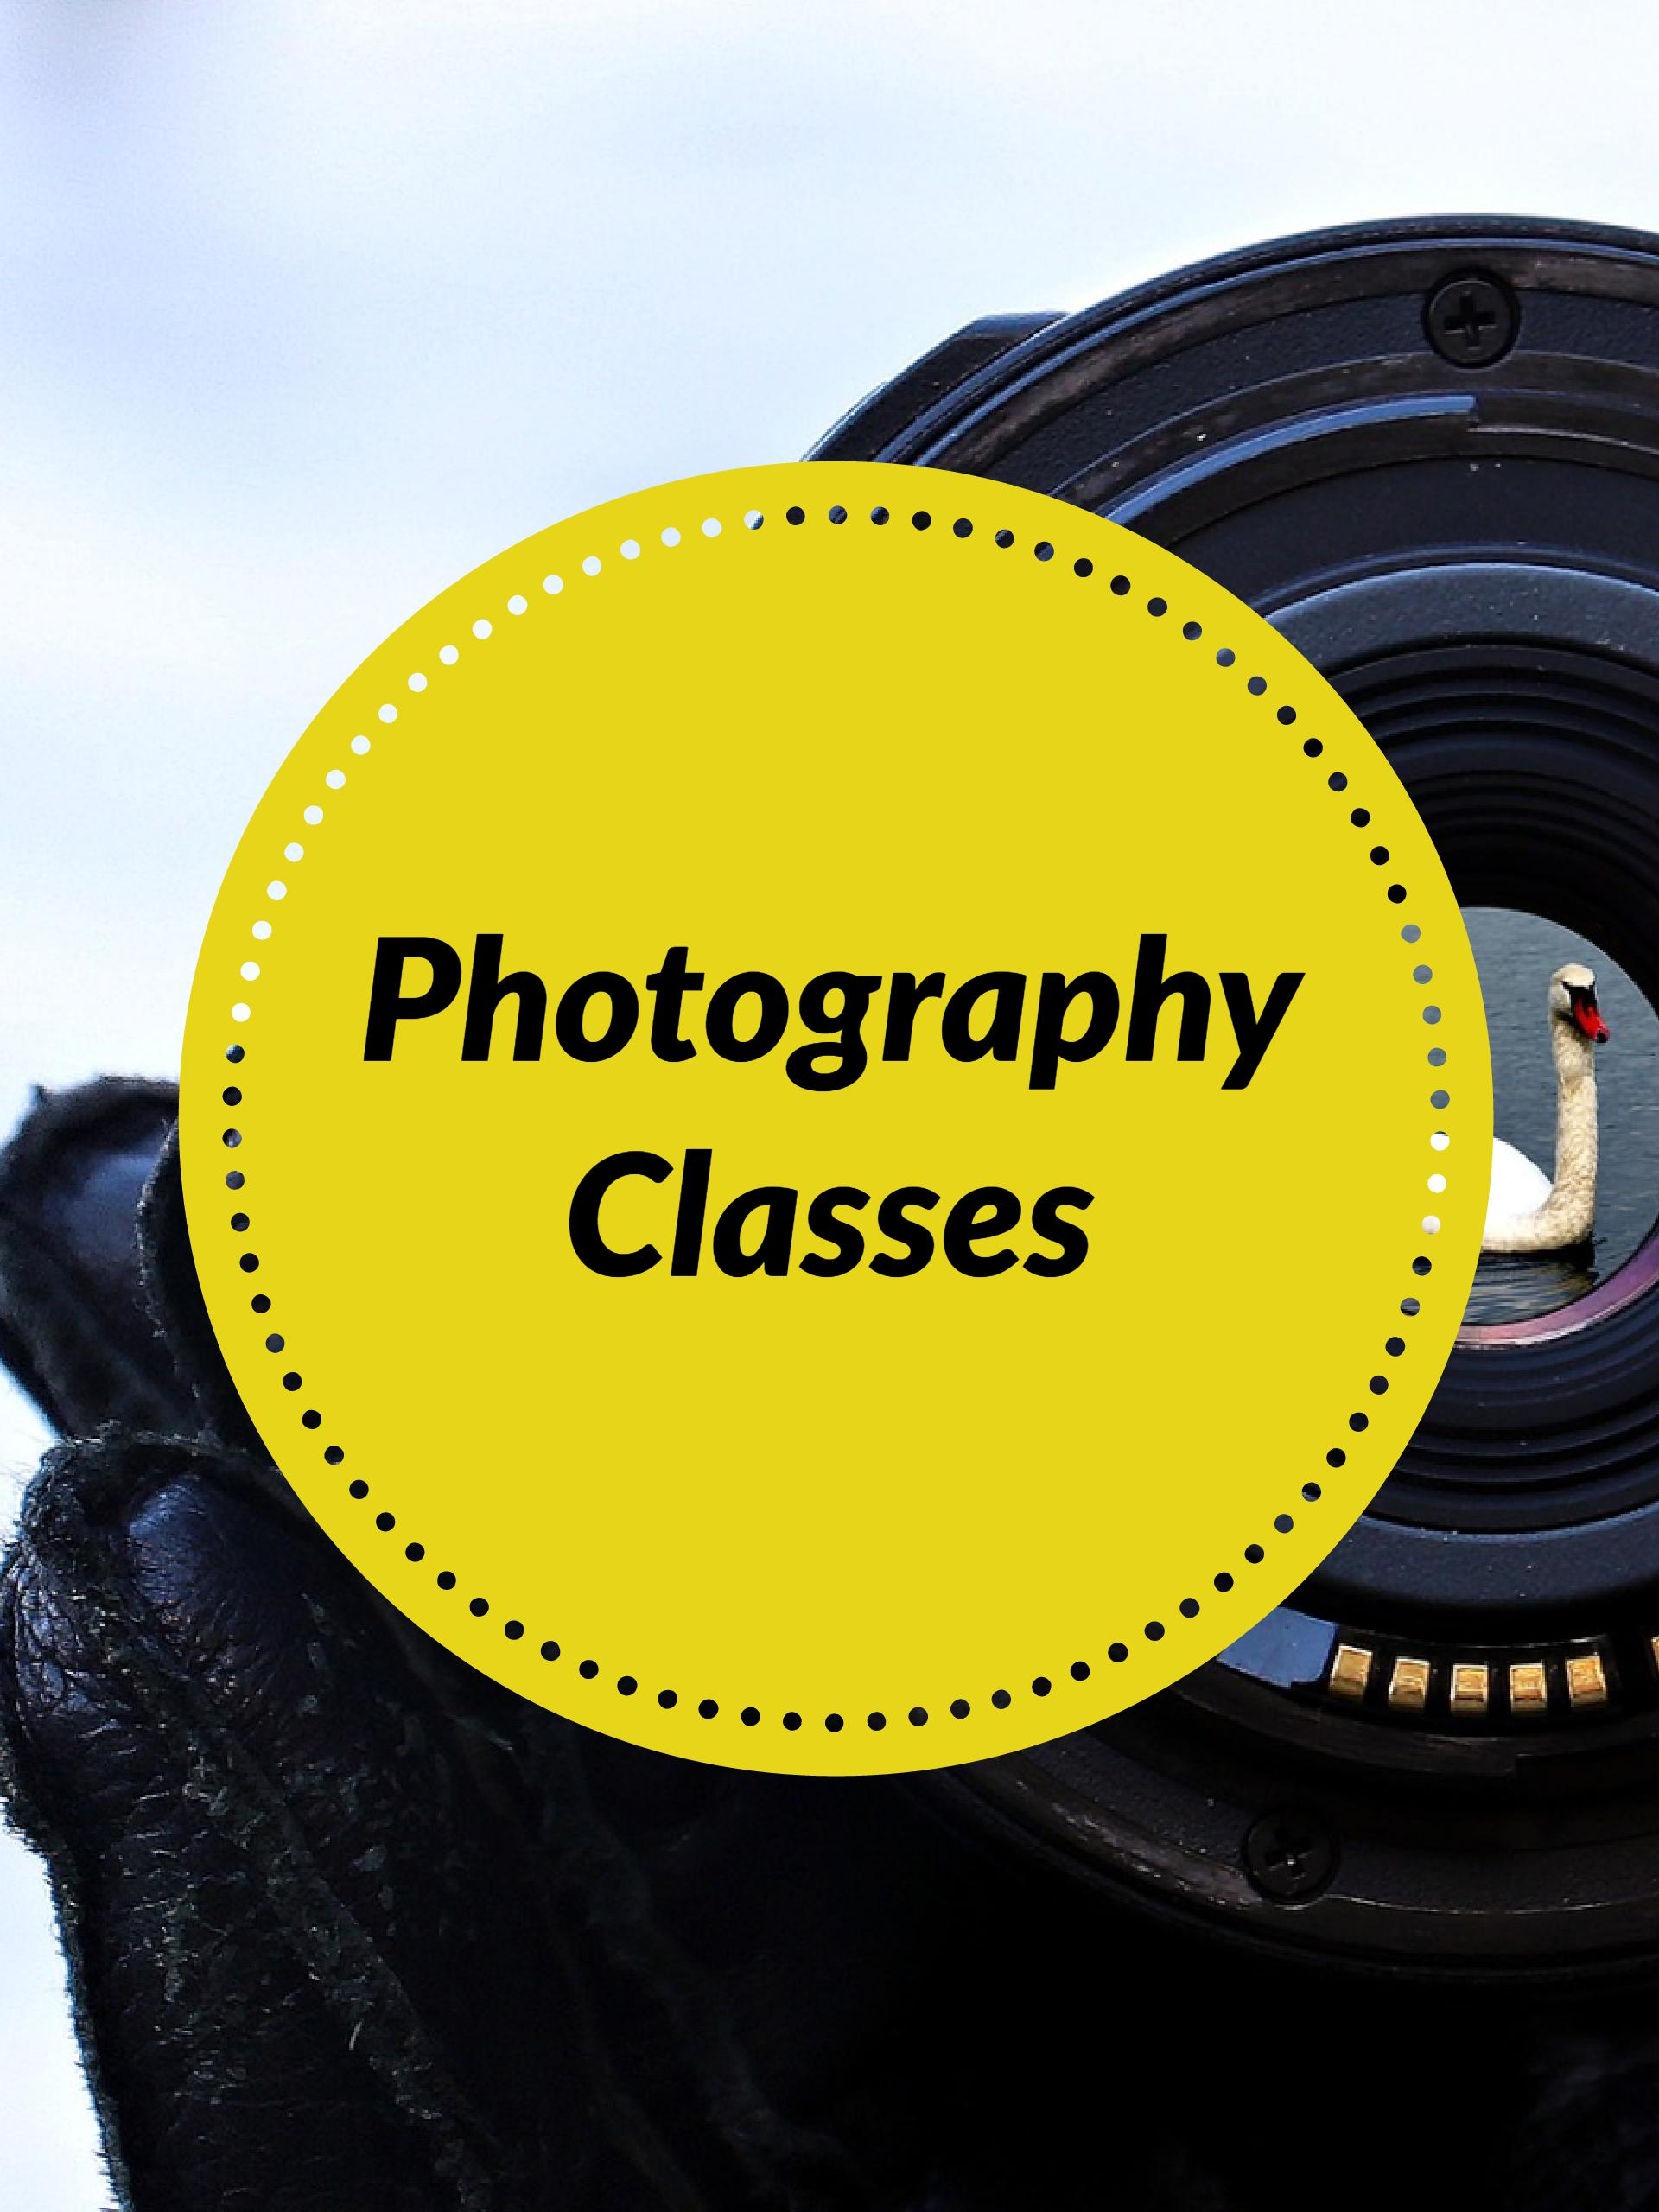 Videography and Photography Classes